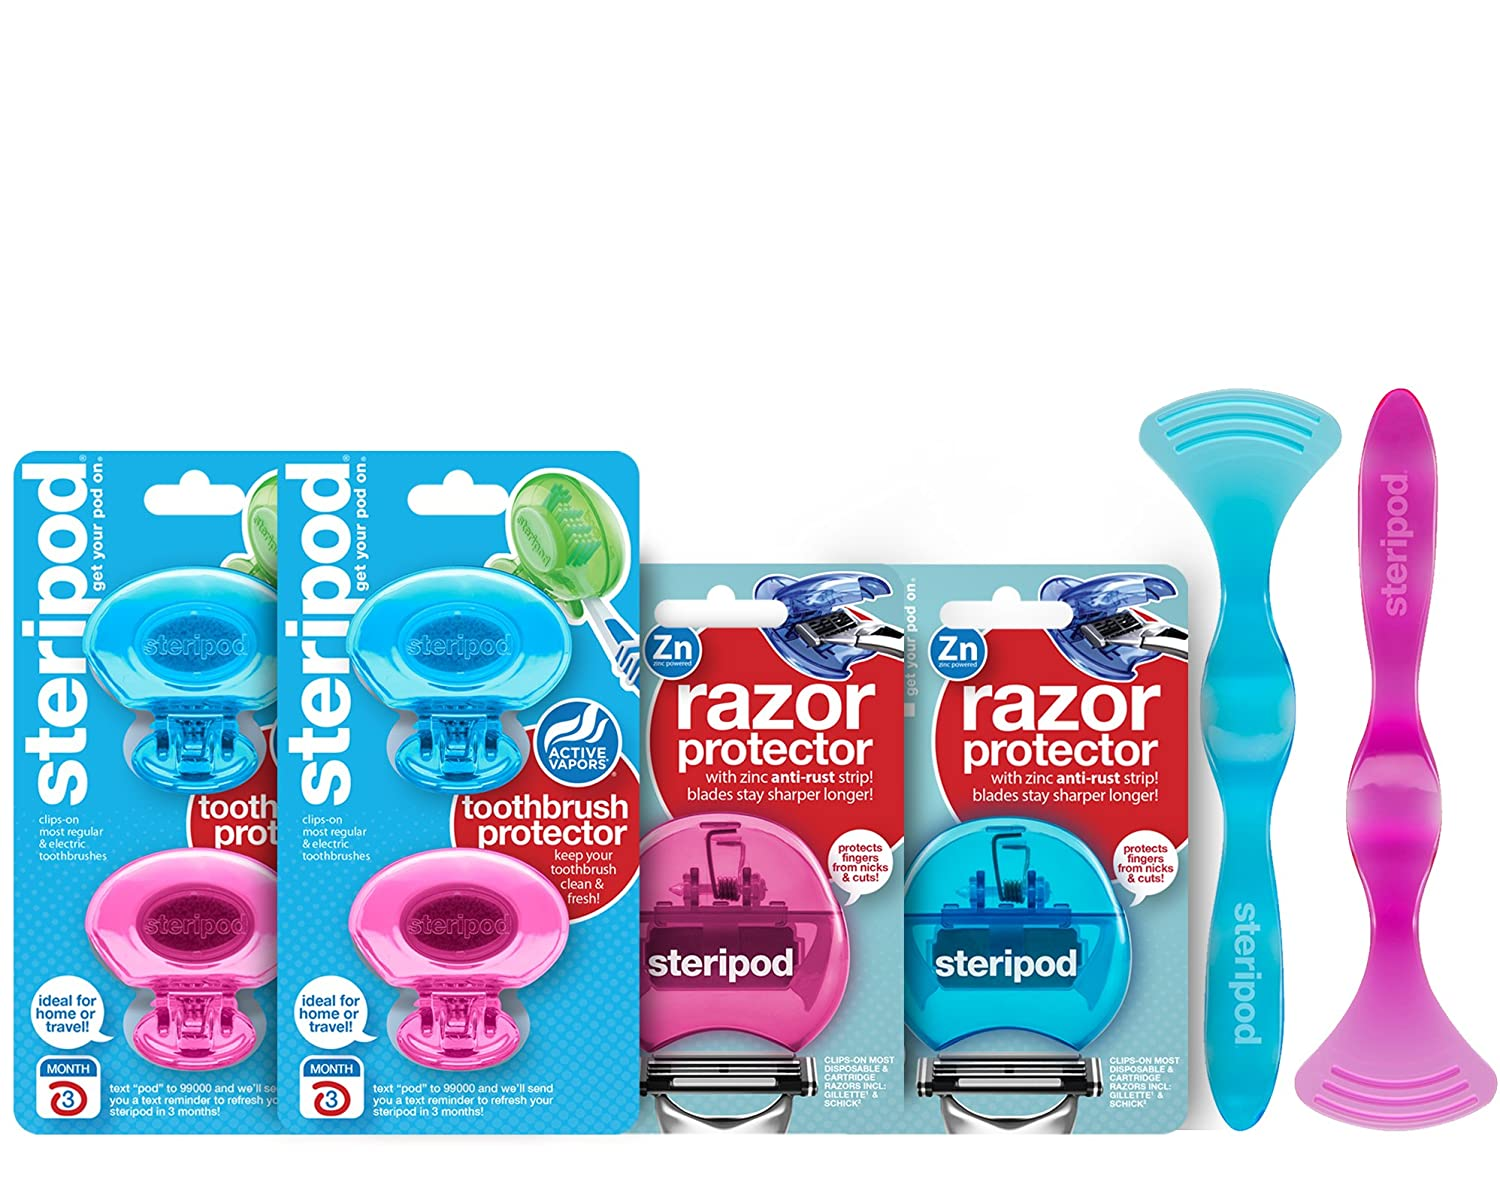 Steripod Kit For Men and Women: 4 Clip-On Toothbrush Protectors (2 Blue & 2 Pink), 2 Razor Protectors (Blue & Pink), 2 Tongue Cleaners (Blue & Pink) Bonfit America Inc